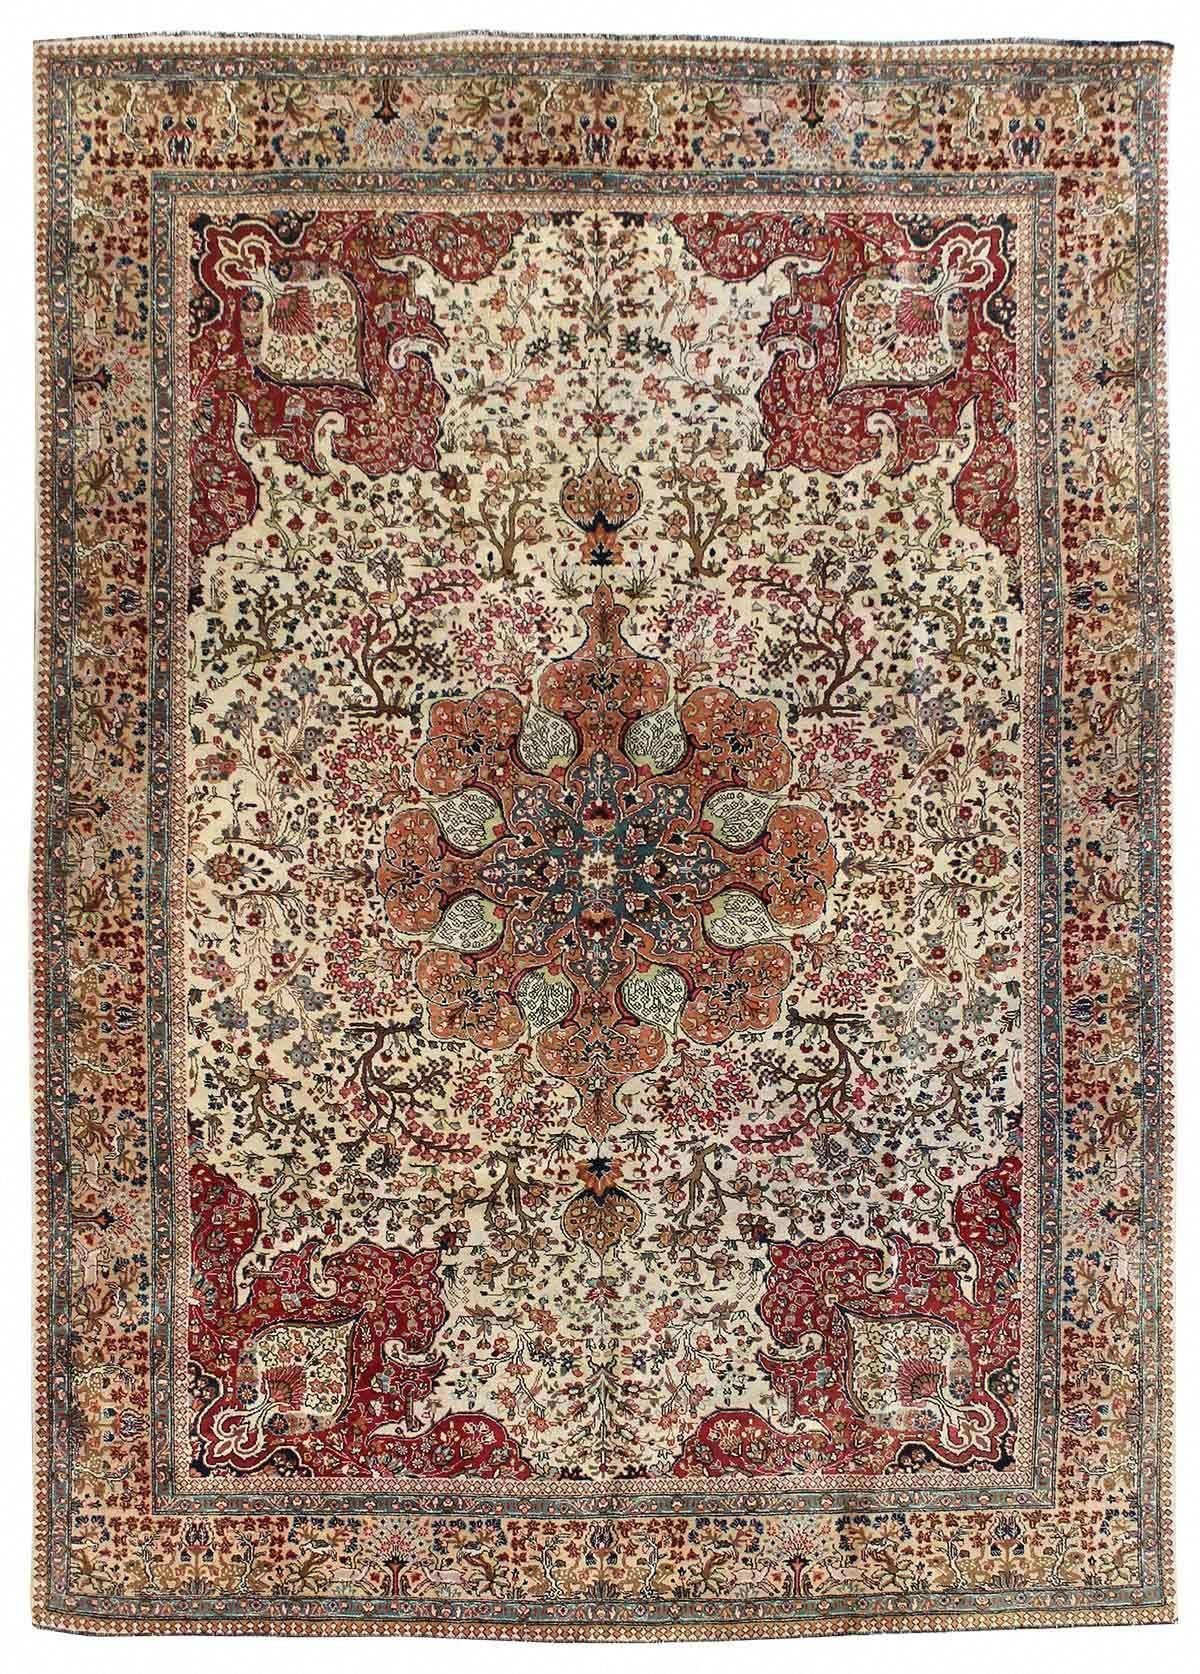 Teppich Discount Carpet Runners Uk Discount Code #carpetrunnersanylength | Rugs, Antique Rugs, Carpet Runner